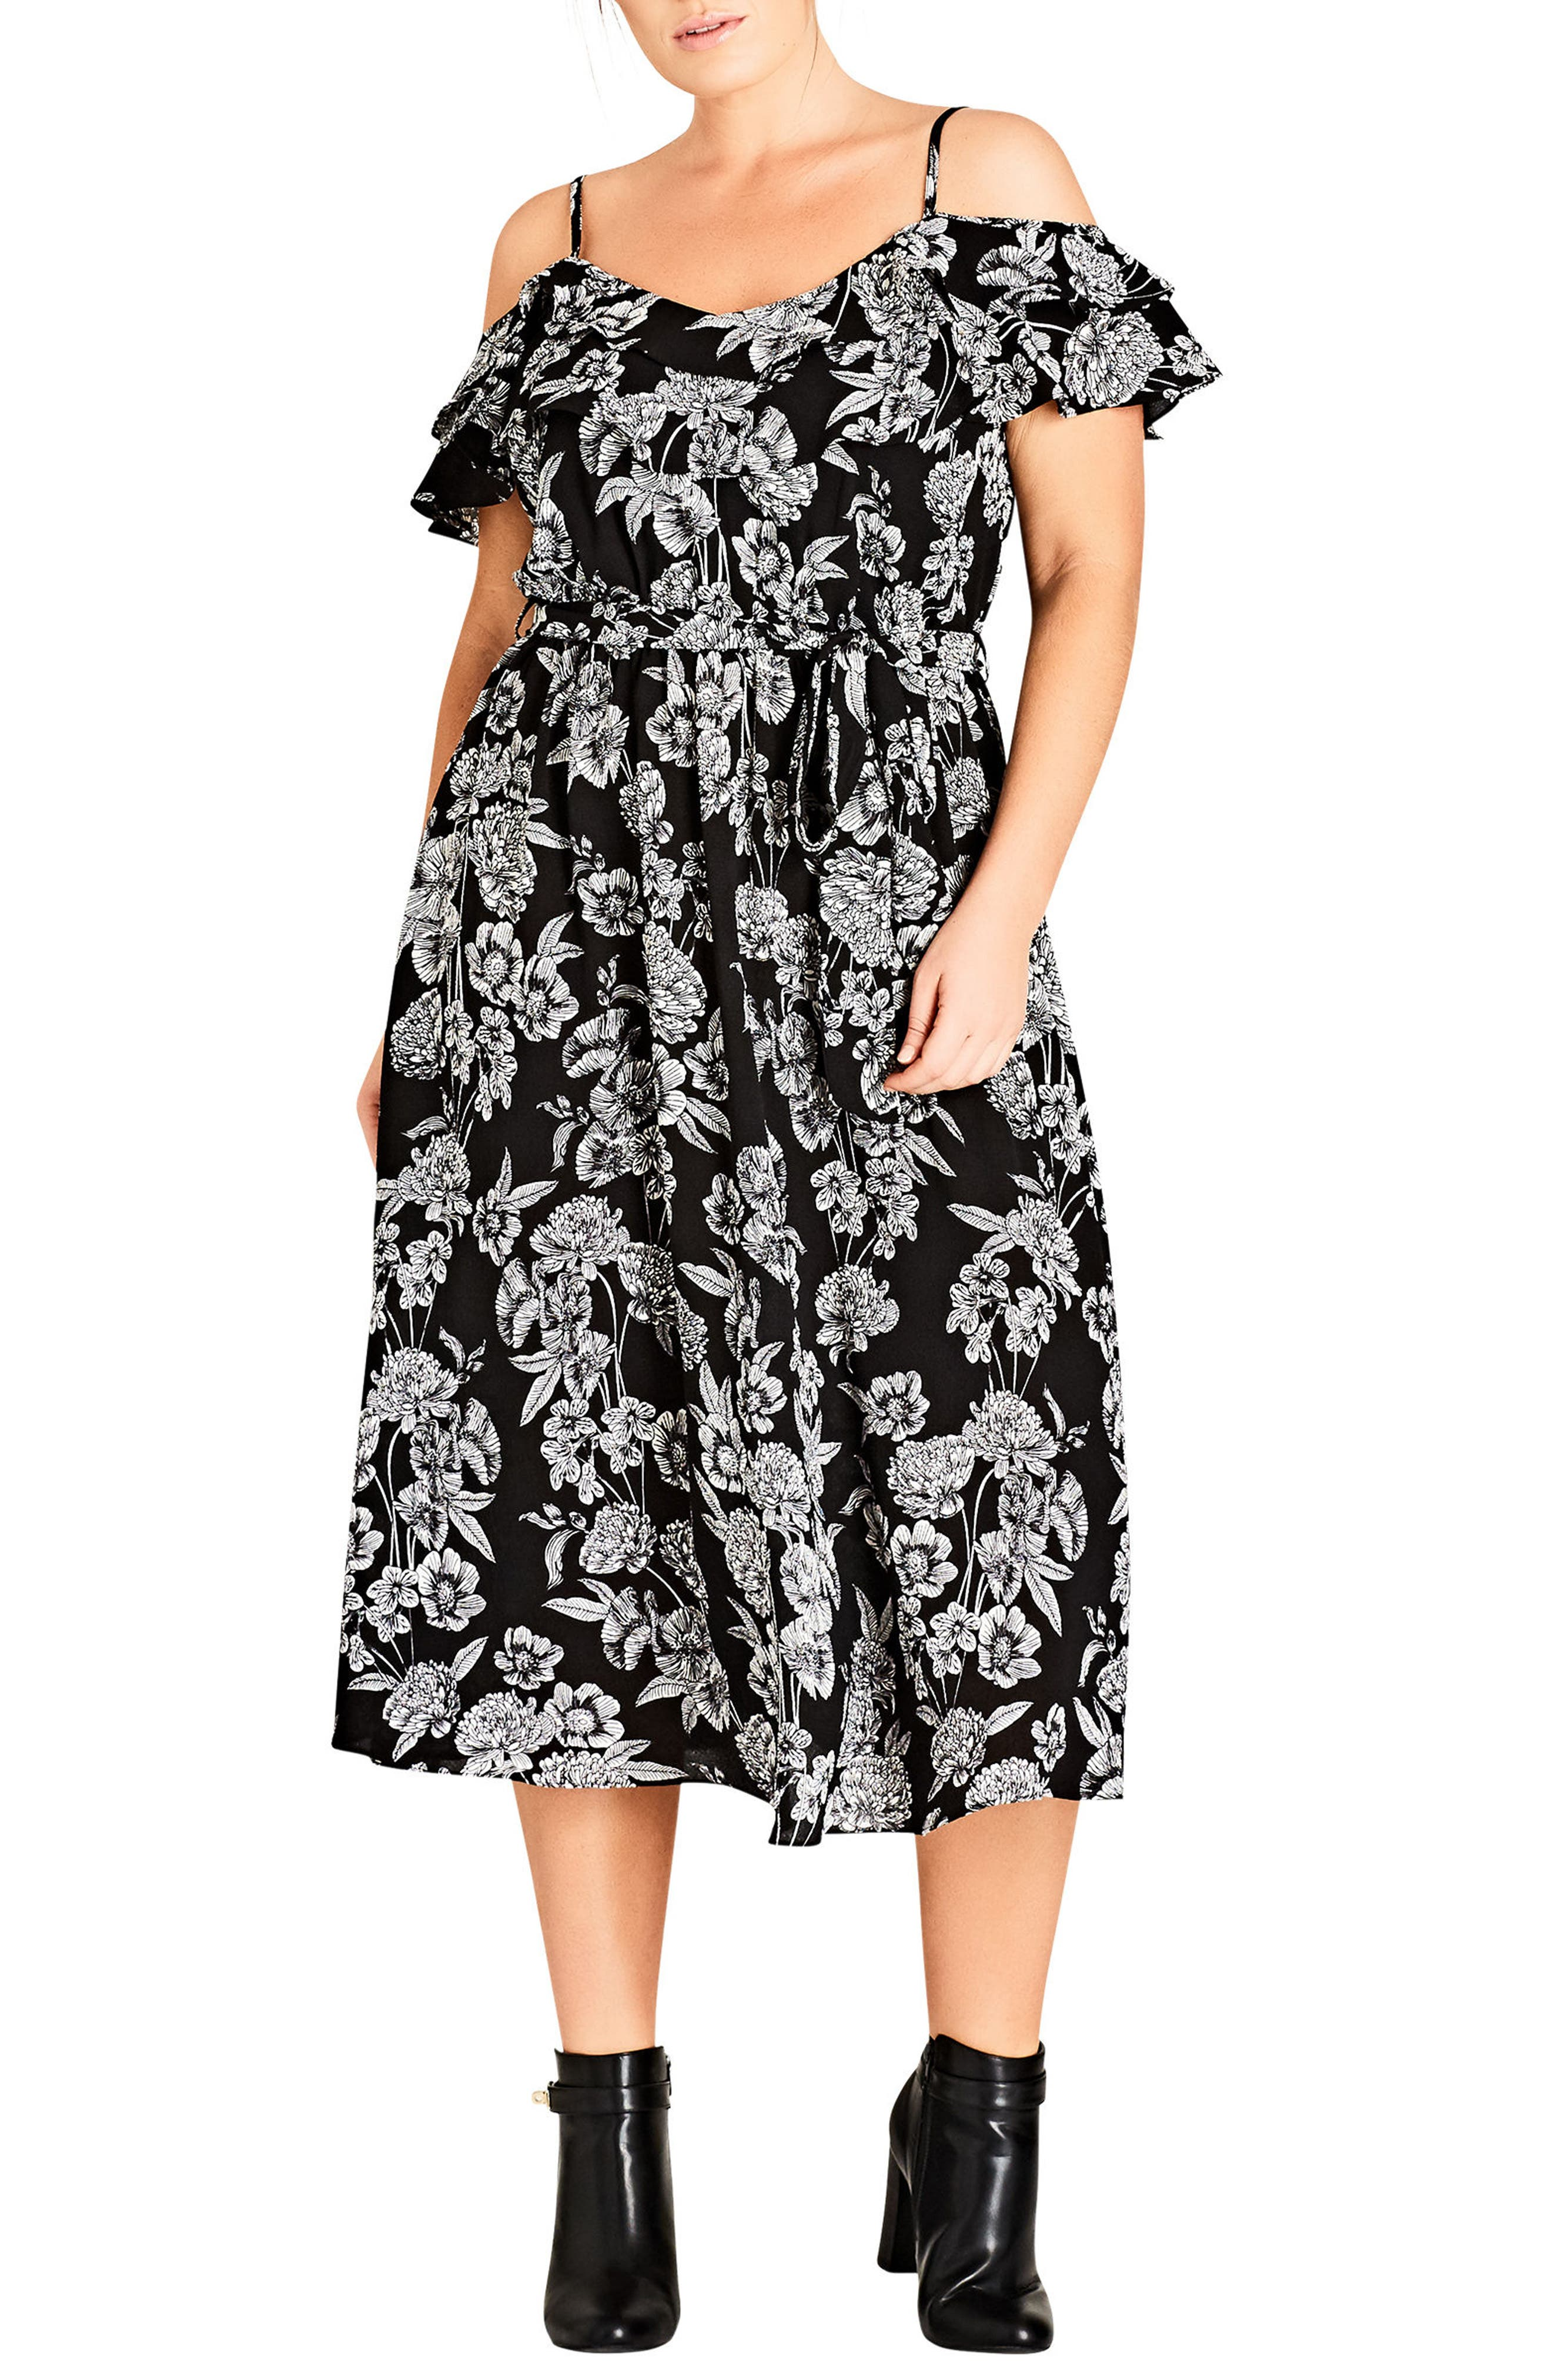 Bloomsbury Midi Dress,                             Main thumbnail 1, color,                             001